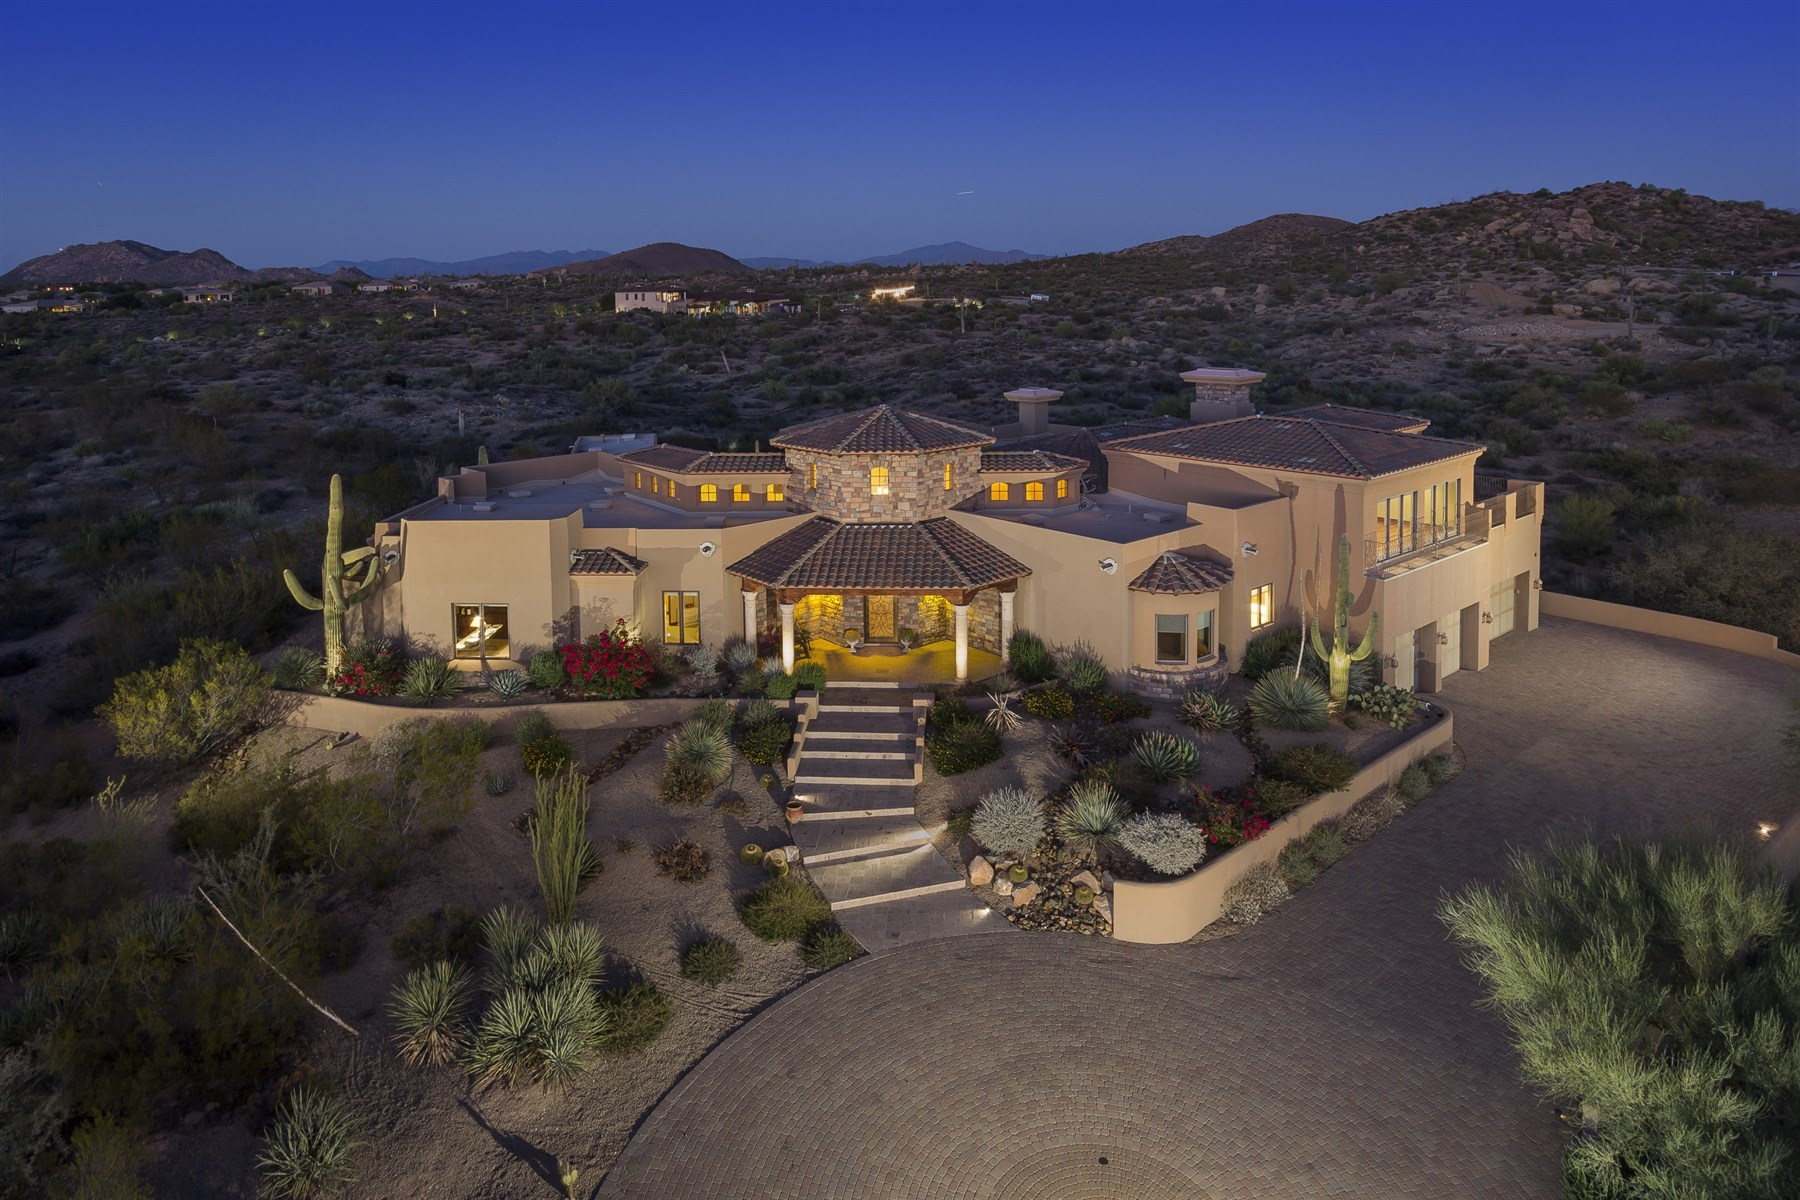 Maison unifamiliale pour l Vente à Gorgeous custom estate on 2+ acres with privacy and views 27345 N 112th PL Scottsdale, Arizona, 85262 États-Unis